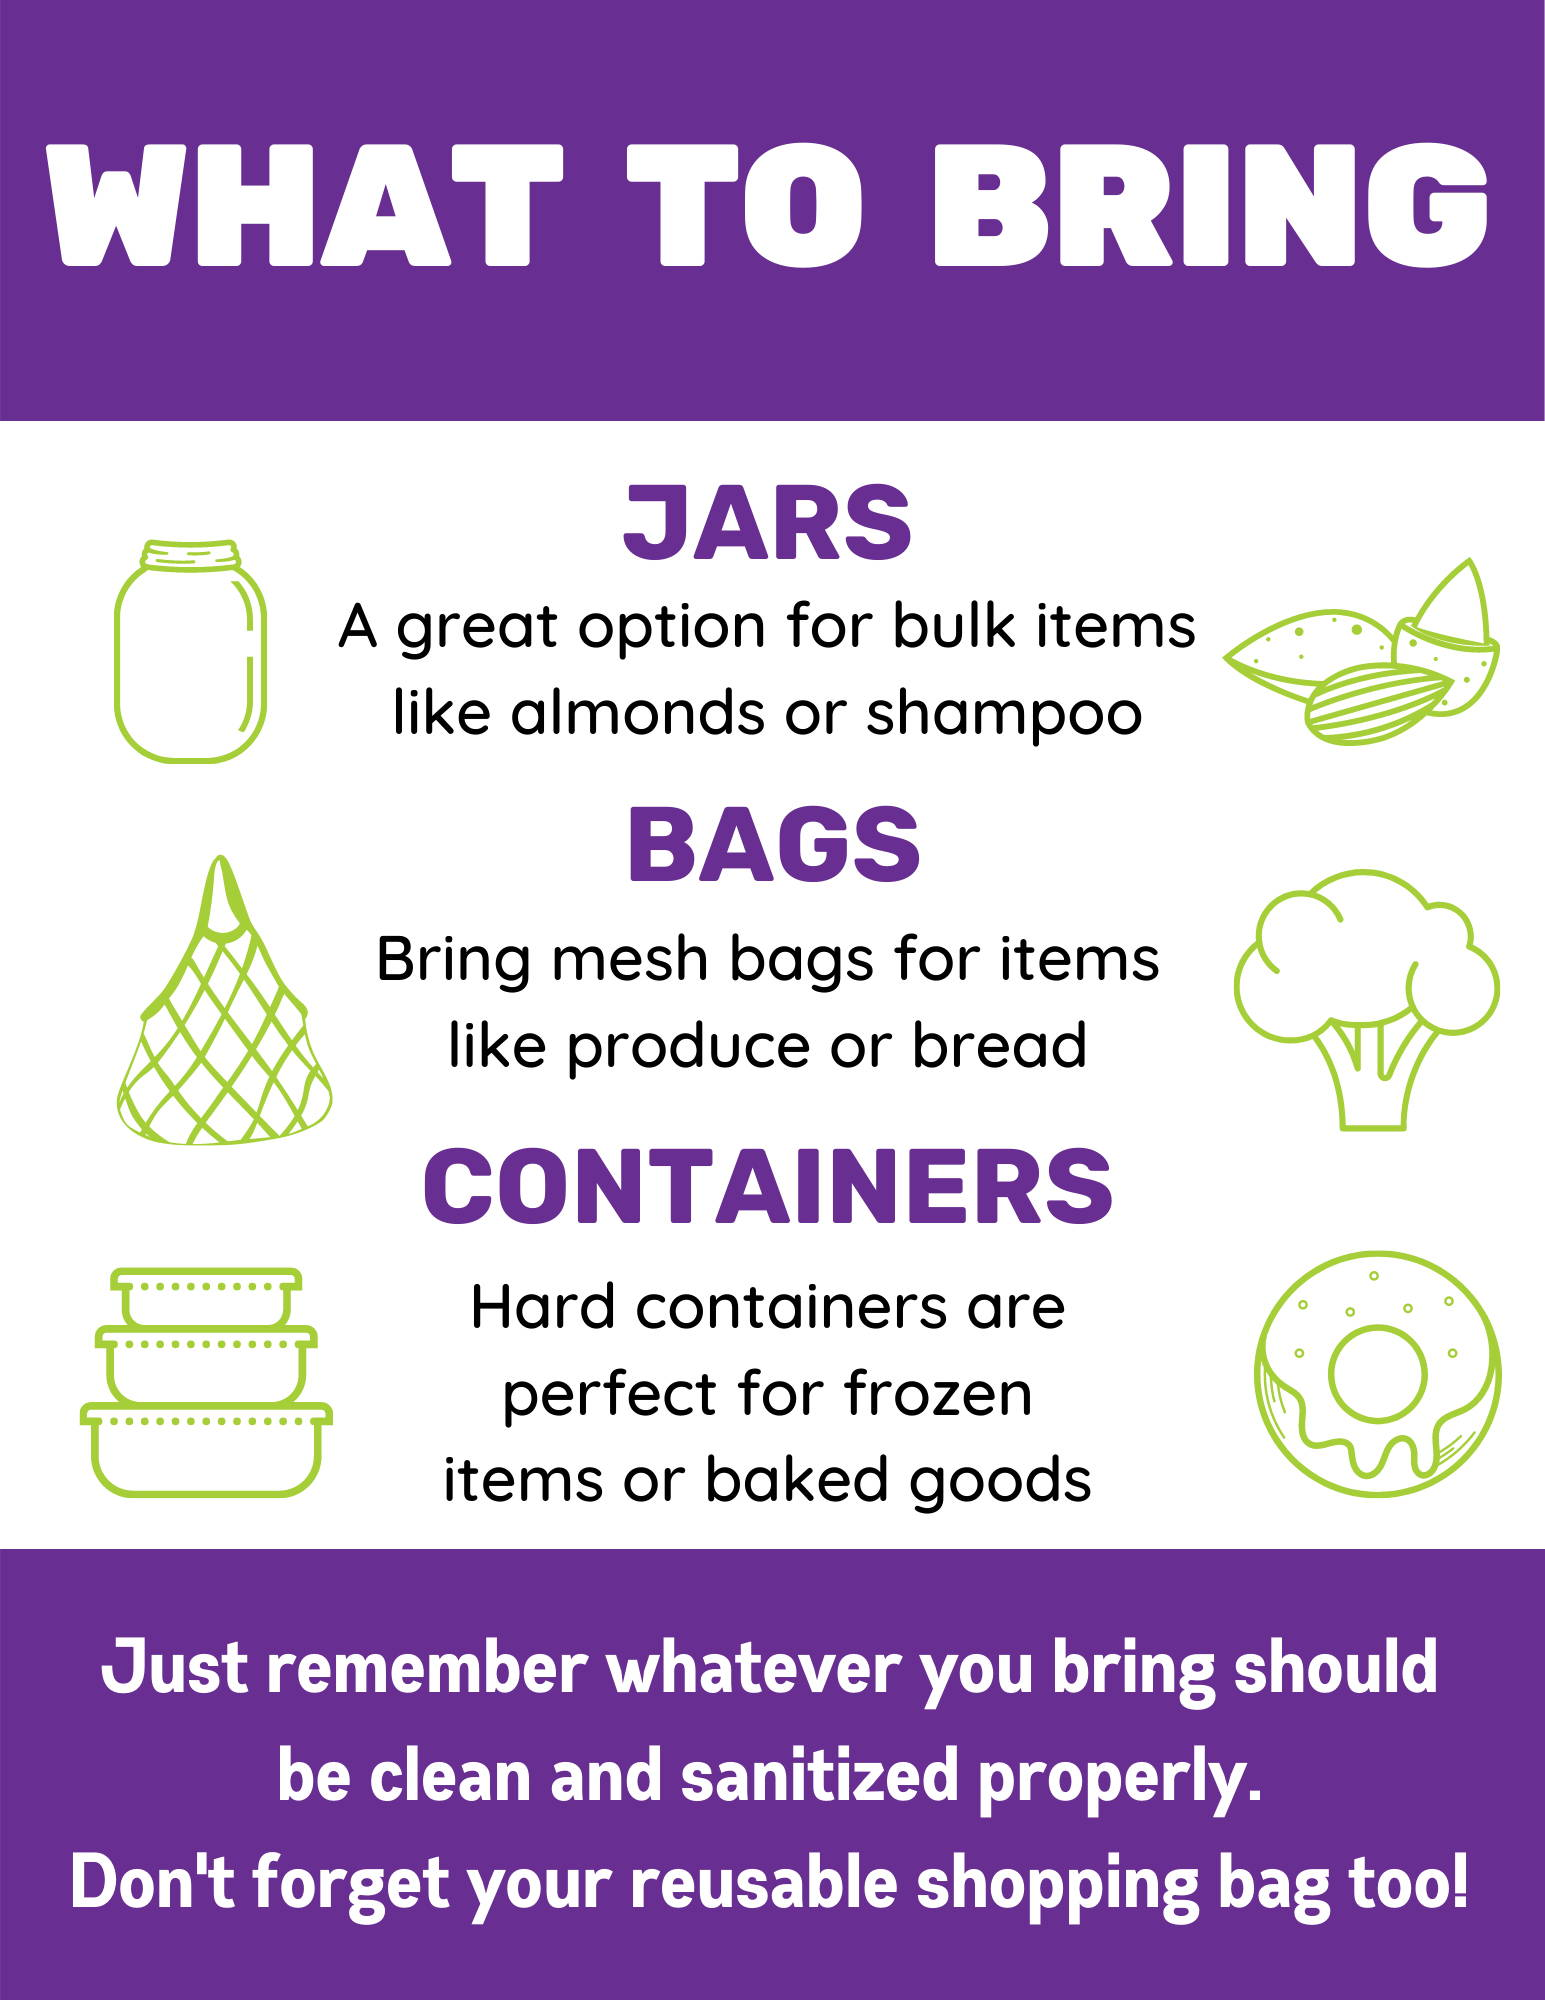 Infographic: what to bring with you, jars, bags, containers. All should be sanitized